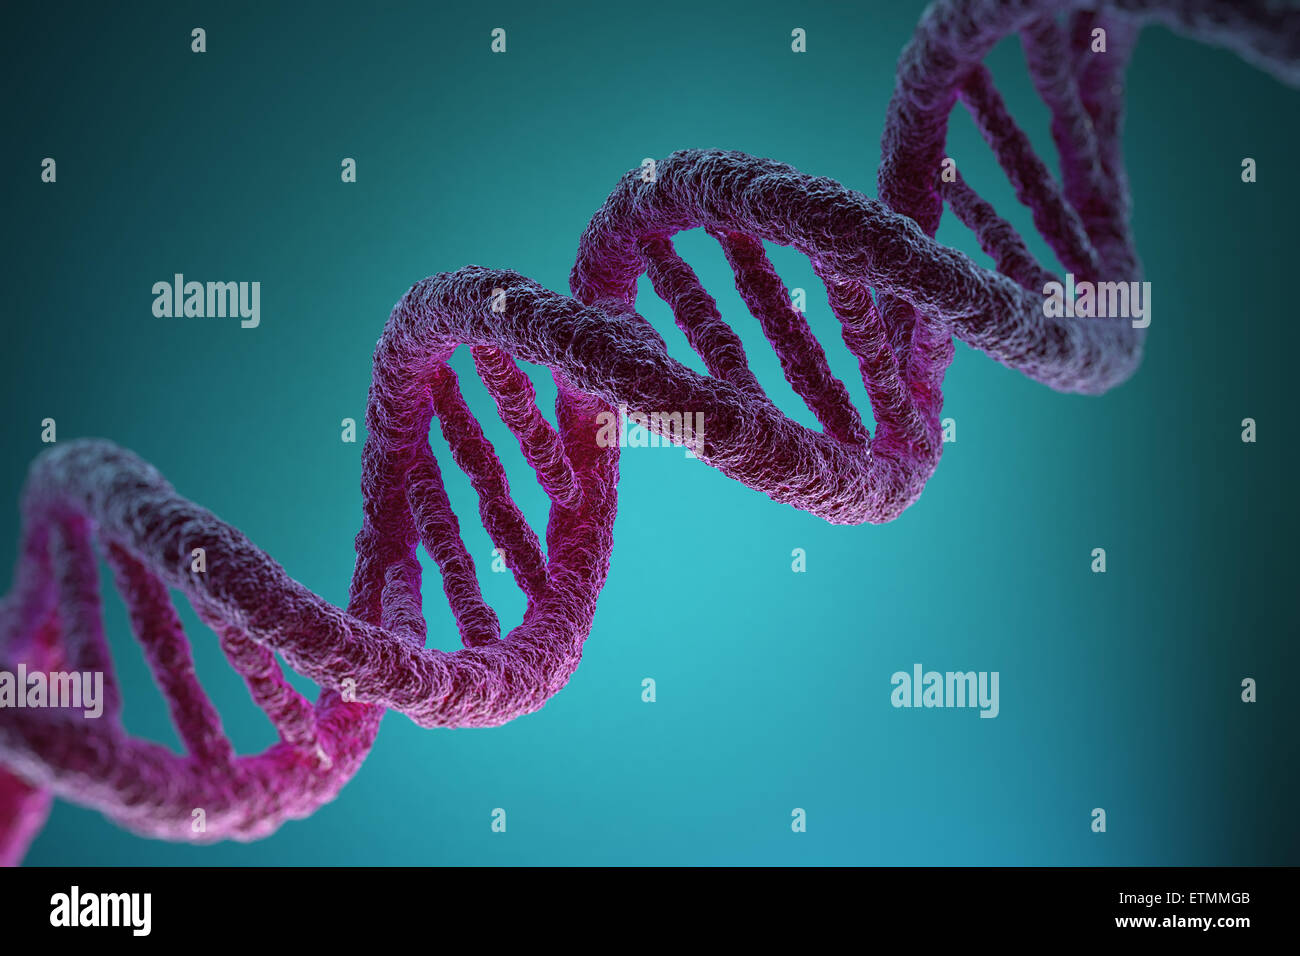 an in depth description of the human dna Dna synonyms, dna pronunciation, dna translation, english dictionary definition of dna dna a adenine t thymine c cytosine g guanine n a nucleic acid that carries the genetic information in cells and some viruses, consisting of two long dna - definition of dna by the free dictionary.